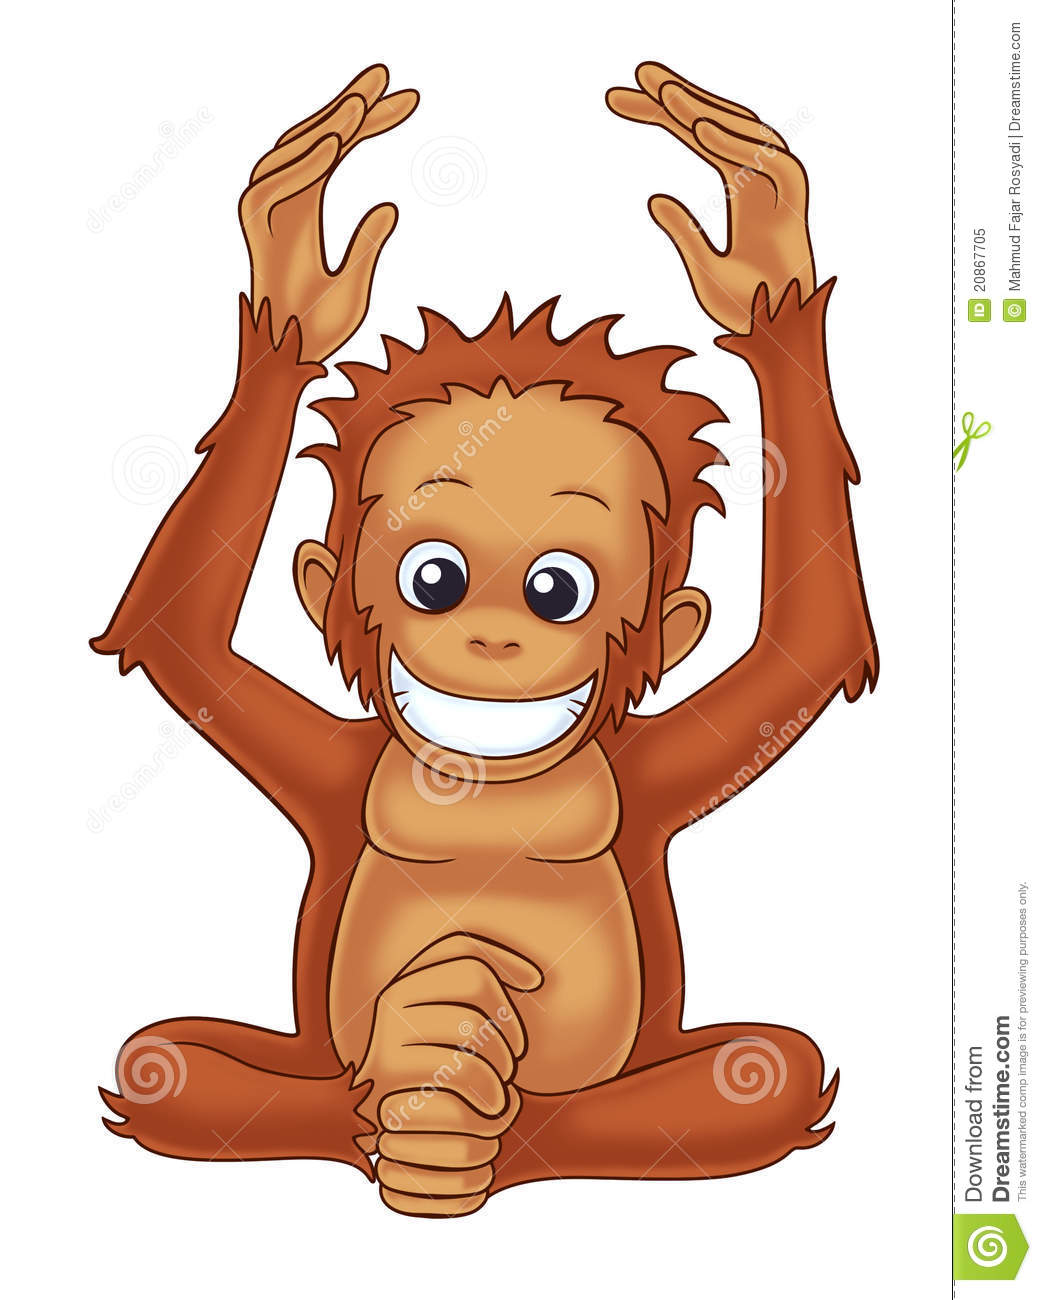 Orangutan Royalty Free Stock Photo - Image: 20867705